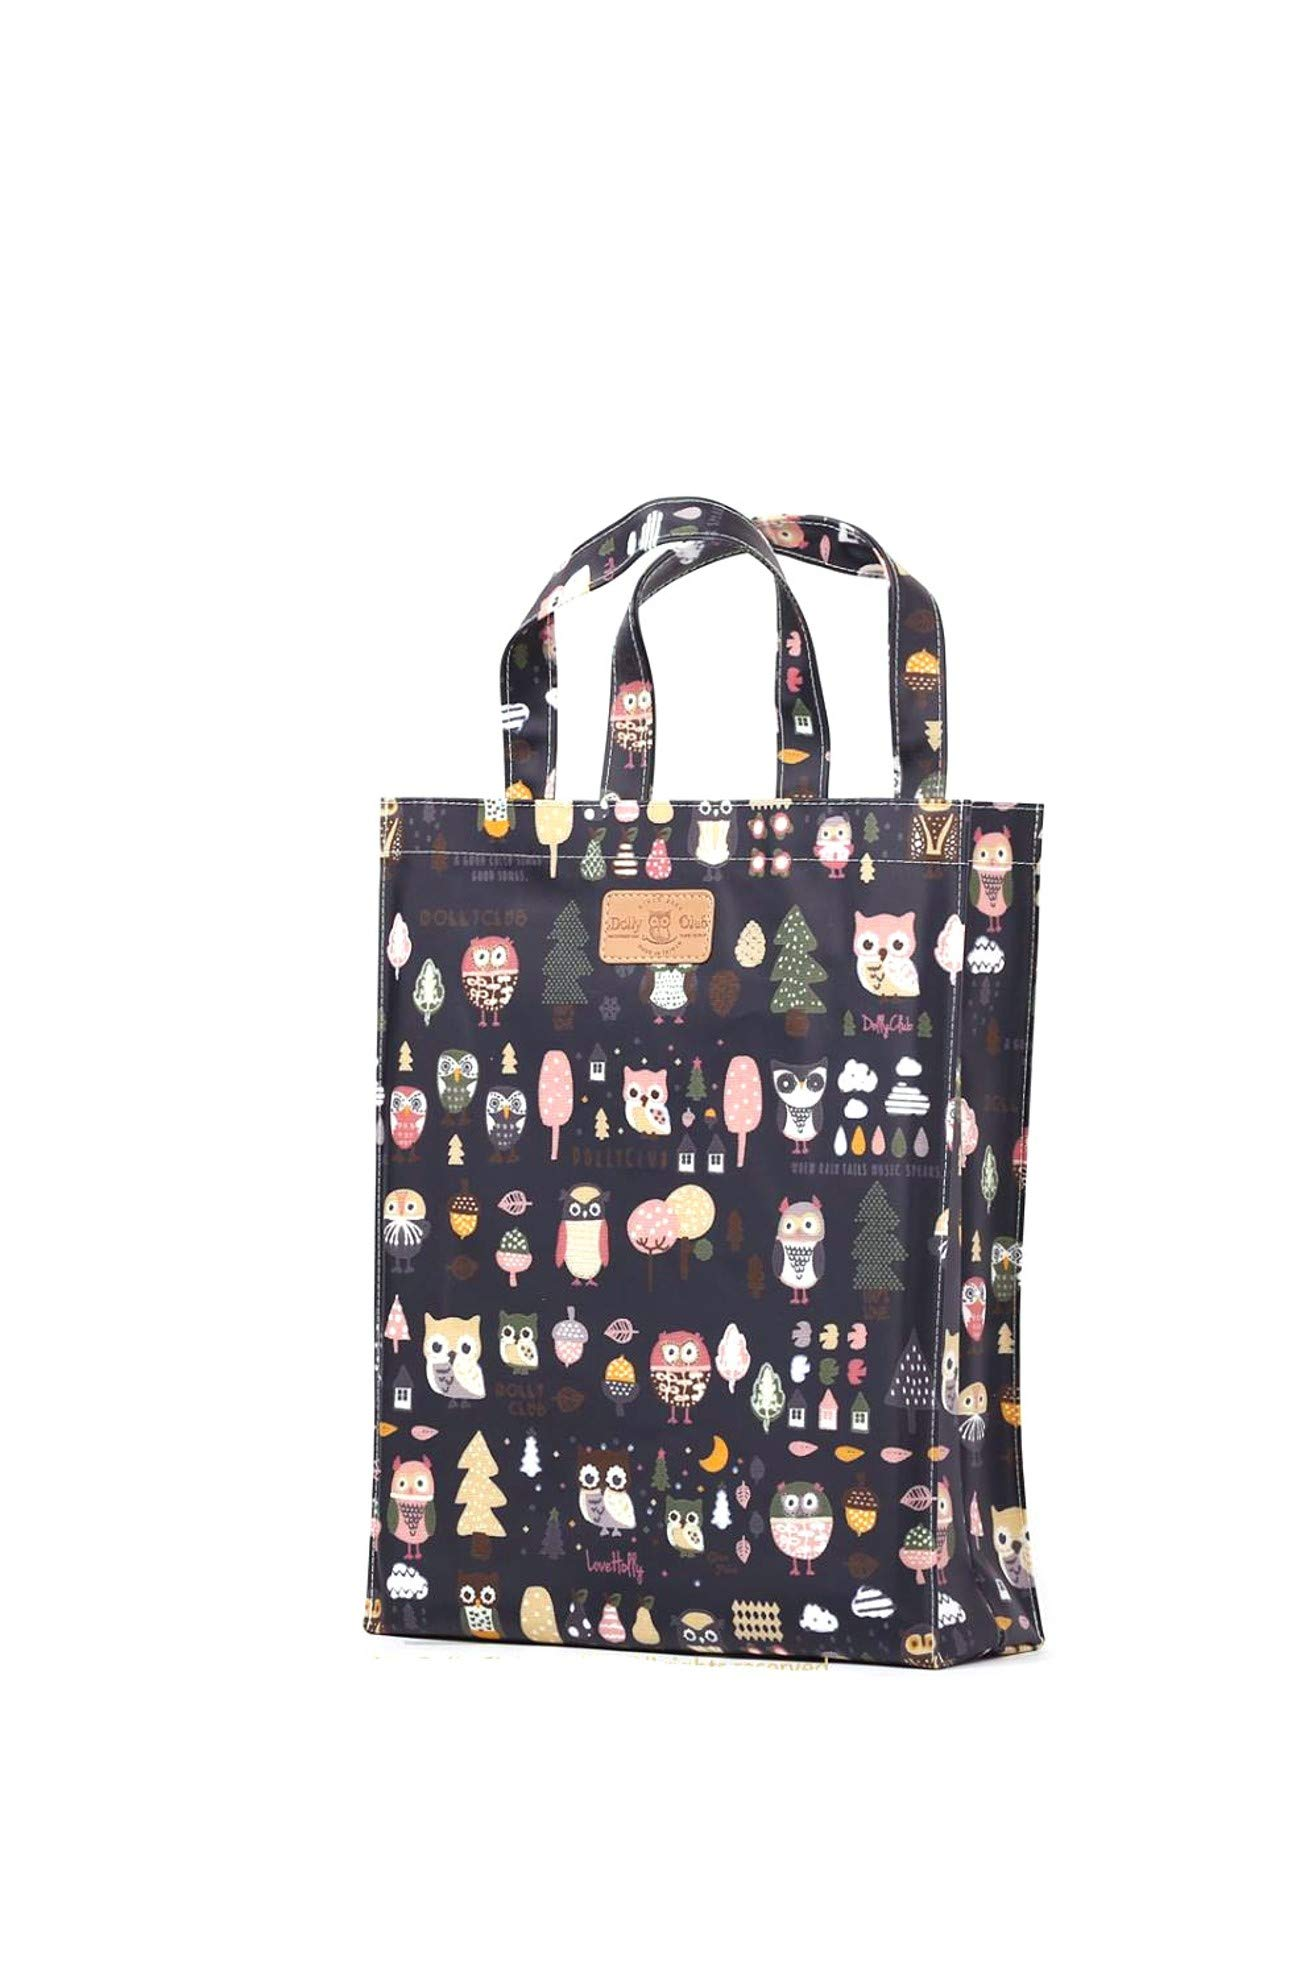 Shopping Bag Water Proofed Oilcloth Tote Bookbag with Gusset Music Bag PVC-coated bag Tote Bag